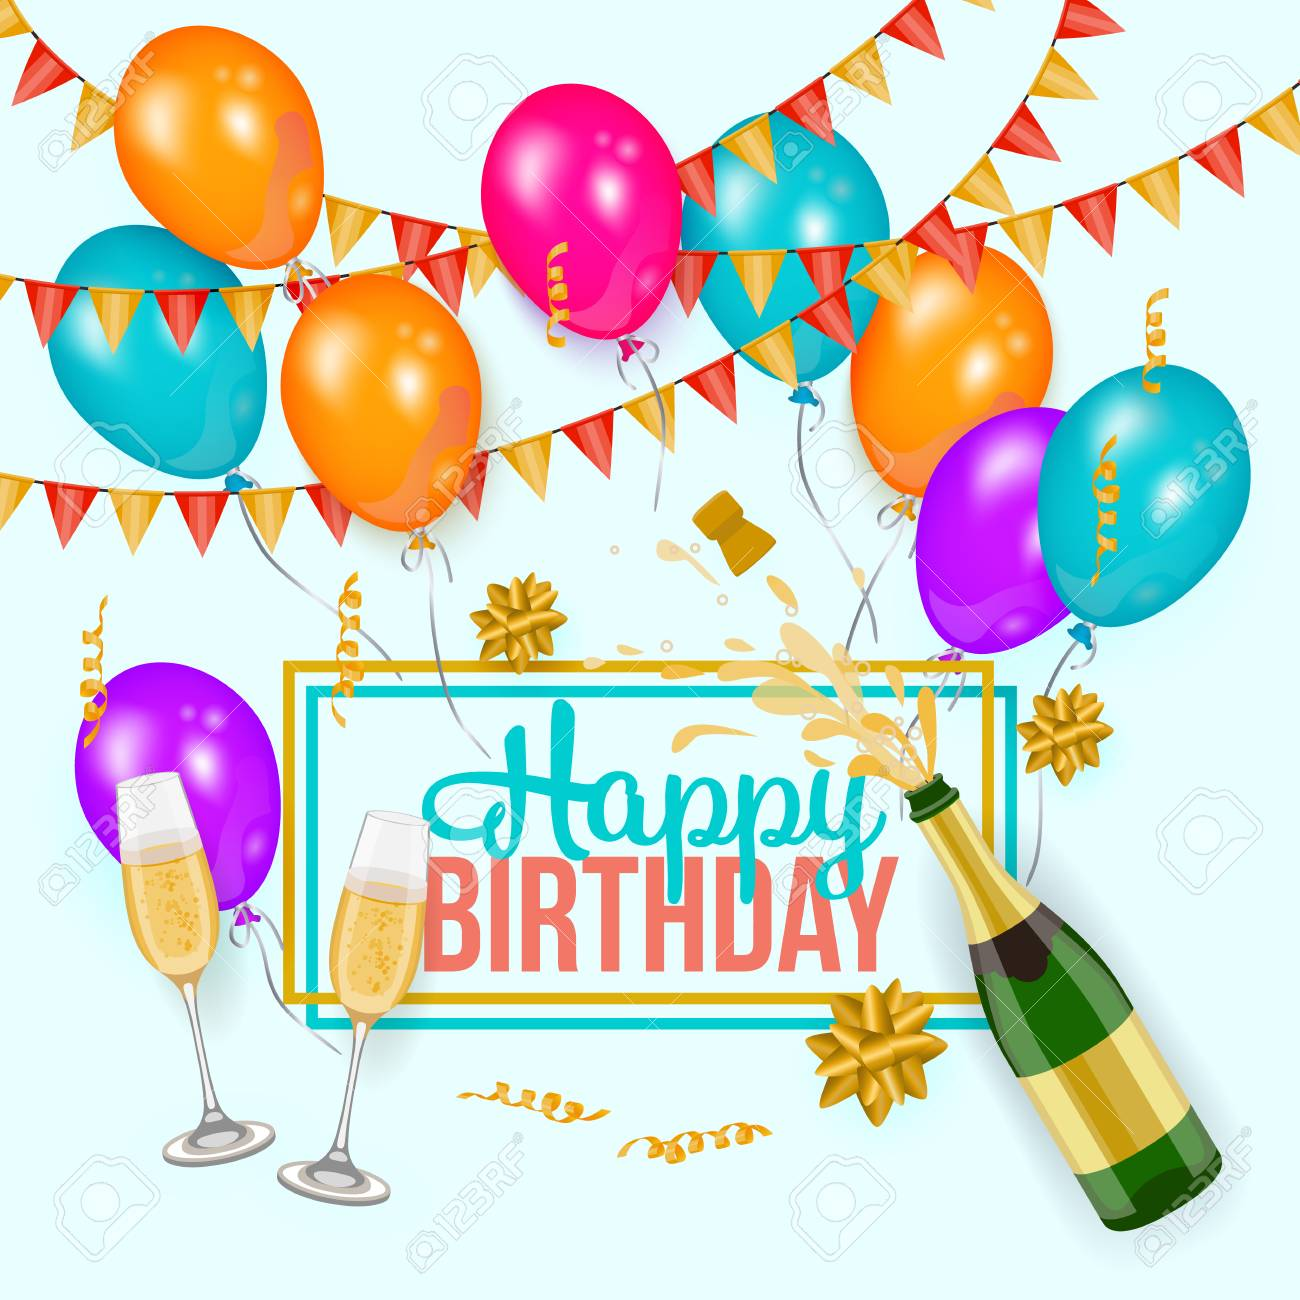 Happy Birthday Greeting Card Template With Champagne Bottle And - Card template birthday